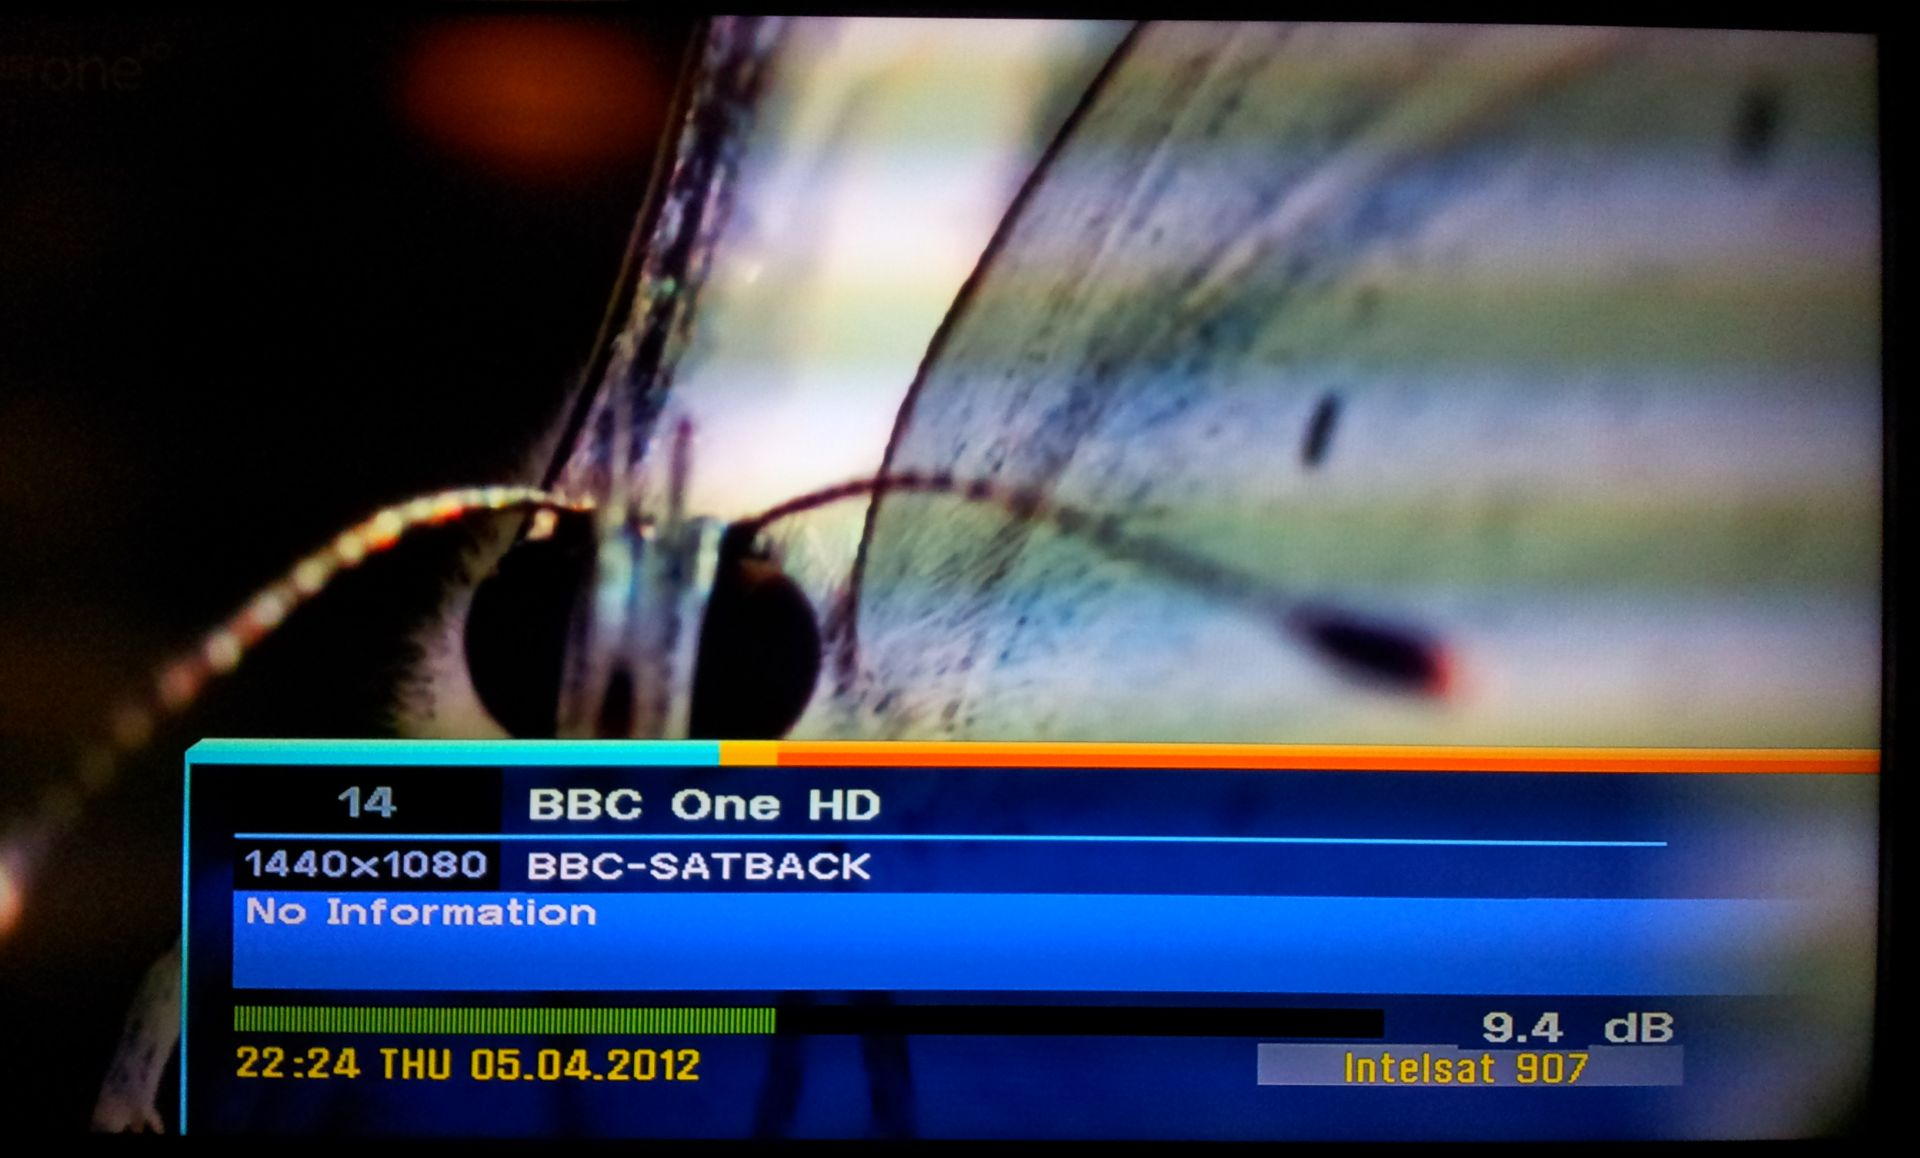 BBC ONE HD.jpg